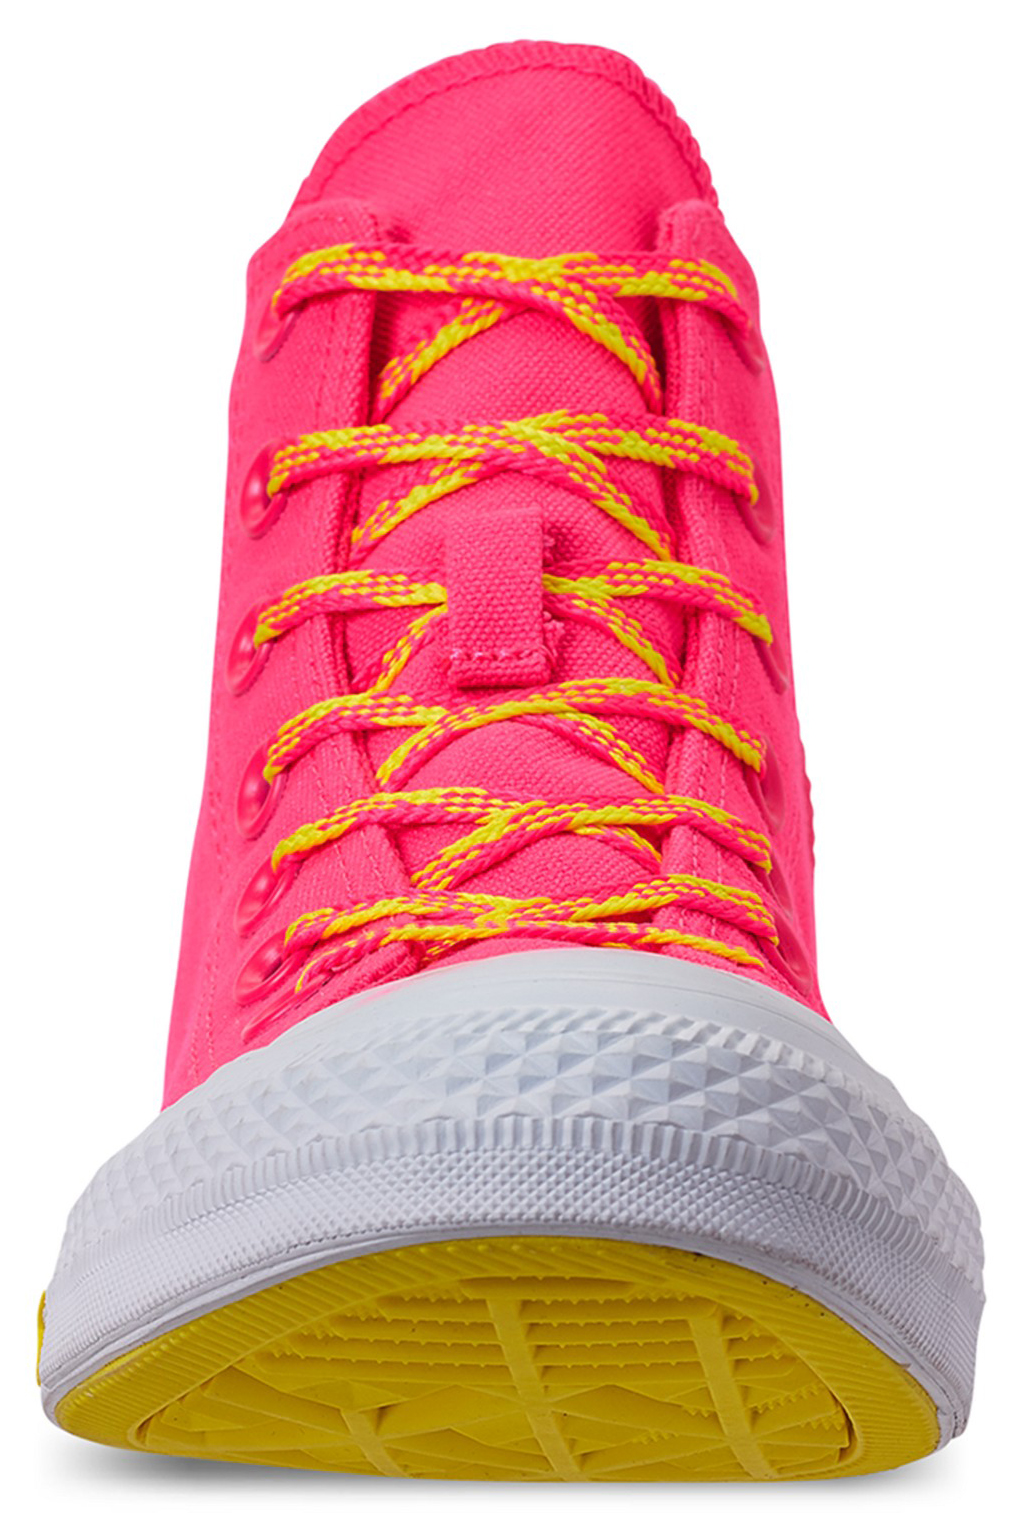 Converse pink sneakers Chuck Taylor All Star Hi Racer Pink/Fresh Yellow